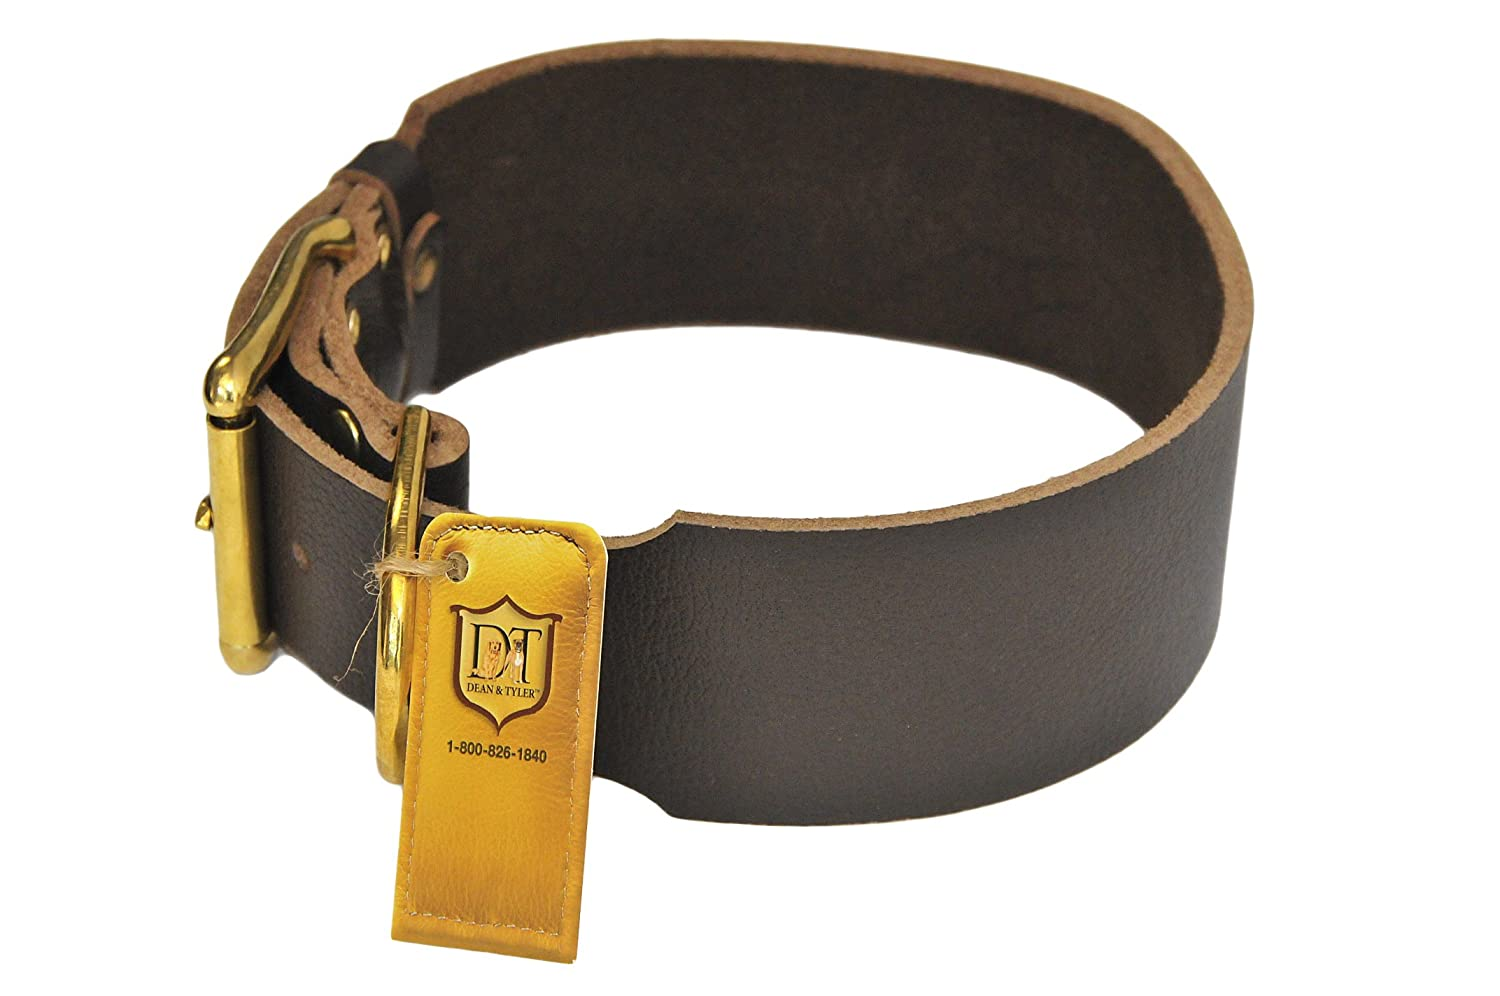 Dean and Tyler B and B , Basic Leather Dog Collar with Solid Brass Hardware Brown Size 34-Inch by 1-1 2-Inch Fits Neck 32-Inch to 36-Inch